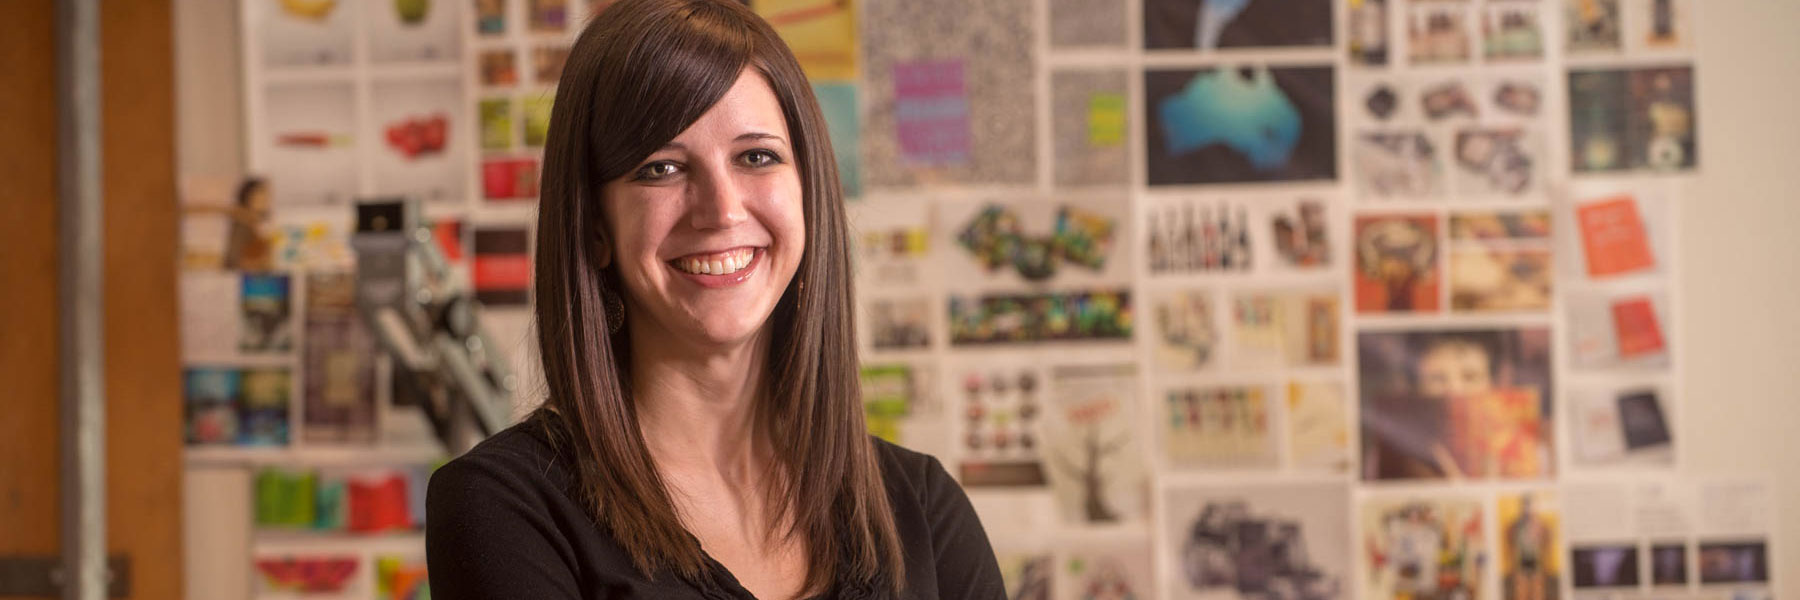 Amanda Quist is a professor in the BLC Media Arts department